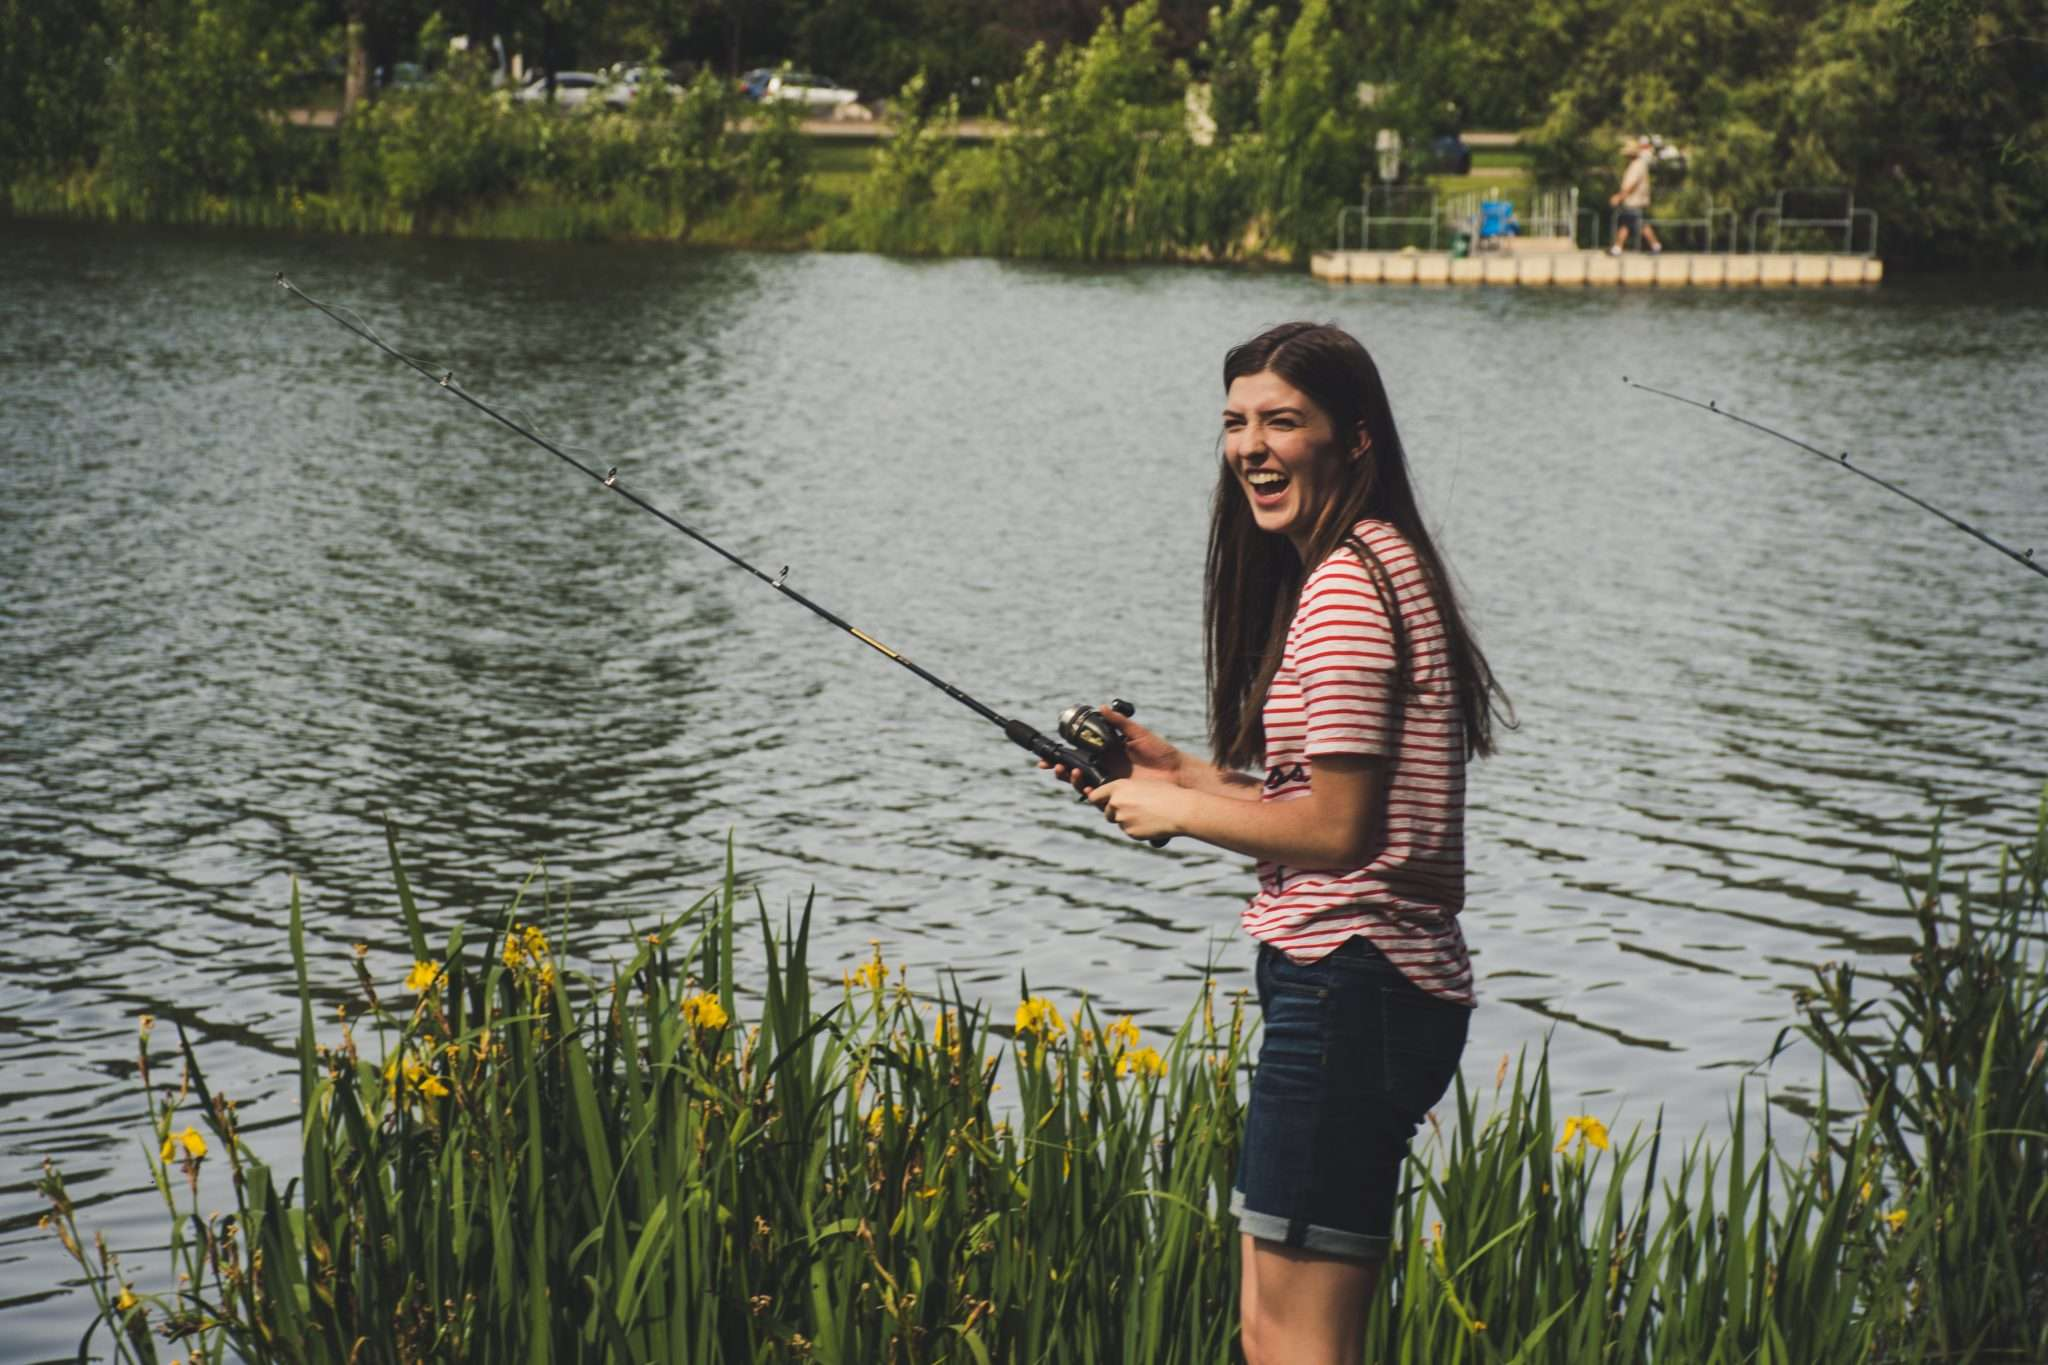 Mum going fishing for self care